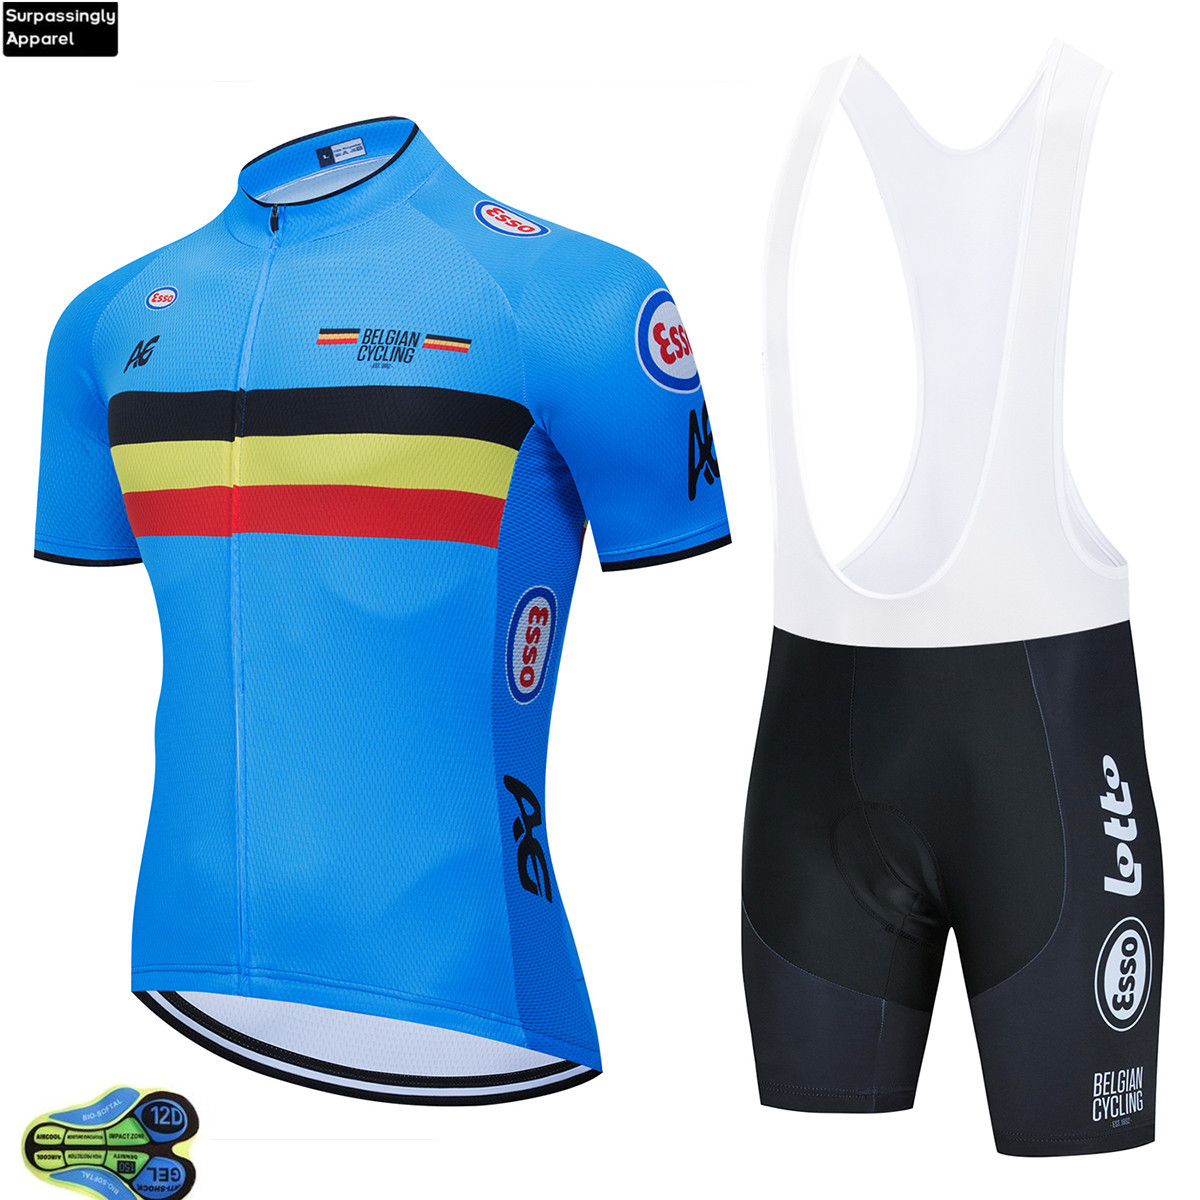 2020 Belgian National Team Cycling Clothing Bike Jersey Quick Dry Mens Bicycle Clothes Pro Cycling Jerseys 12D Bike Shorts Set|Cycling Sets| |  - title=